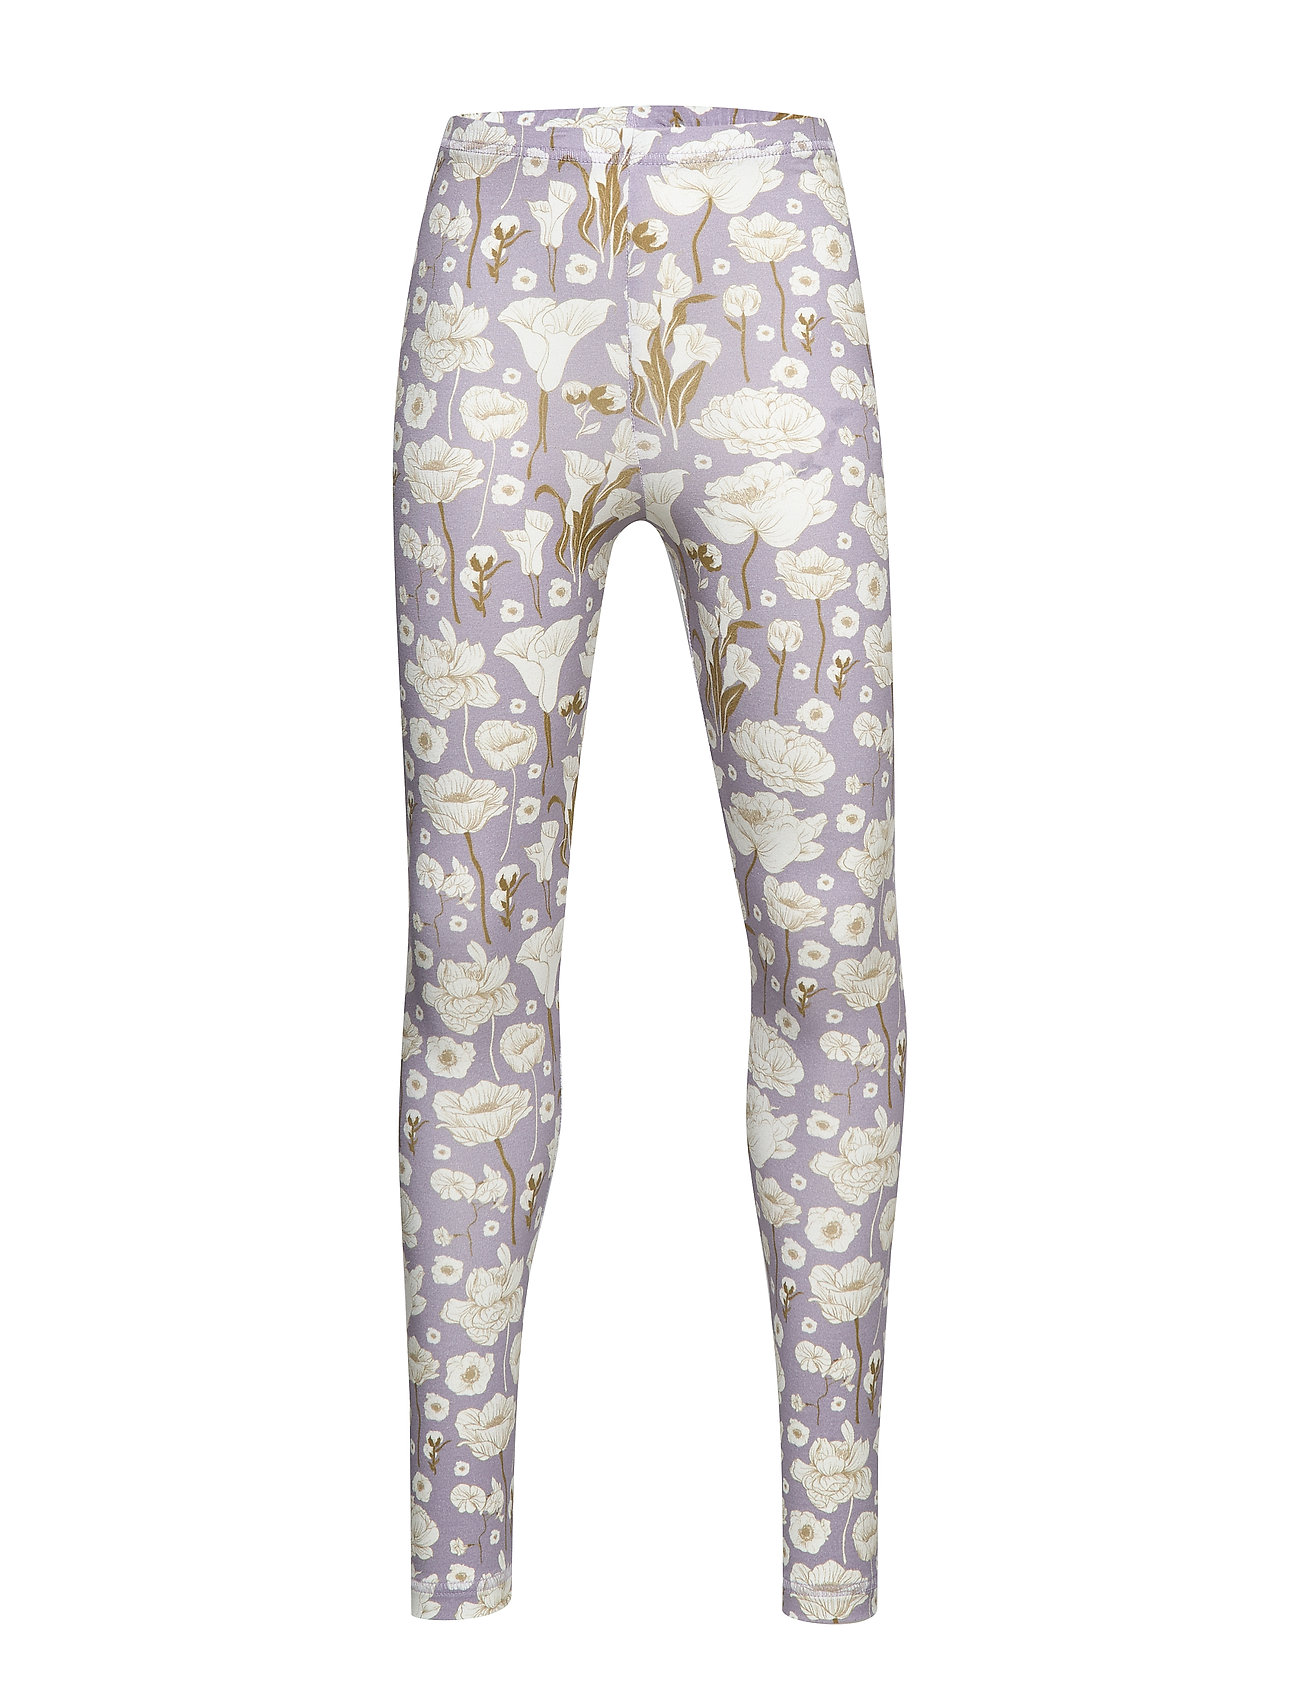 Müsli by Green Cotton Lily leggings - LIGHT LAVENDER